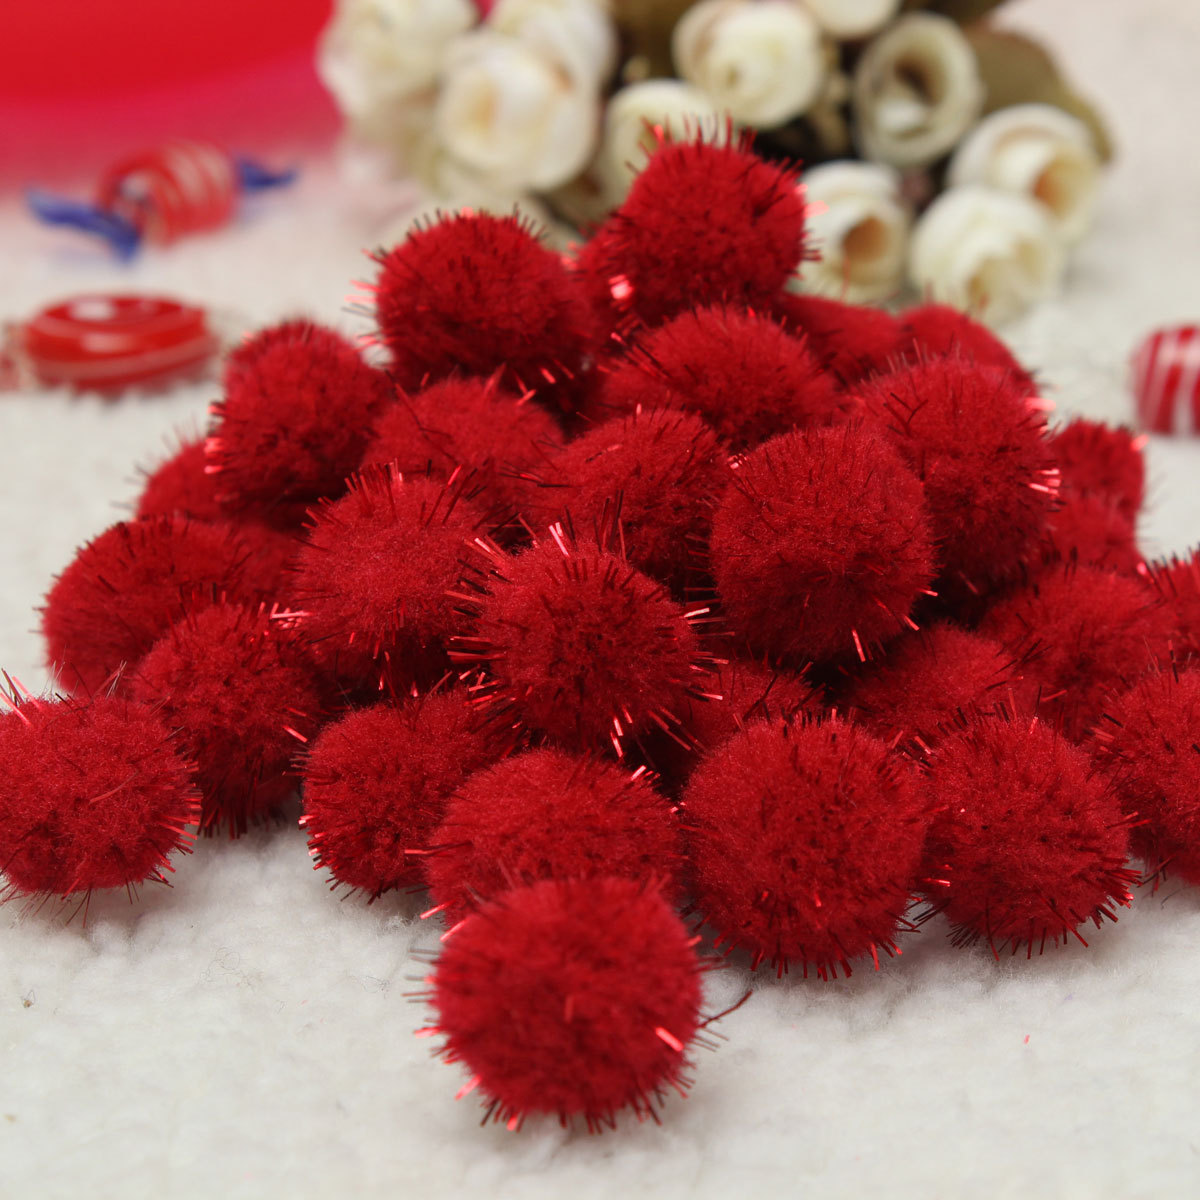 50x sparkly glitter tinsel pom poms balls 20mm for diy